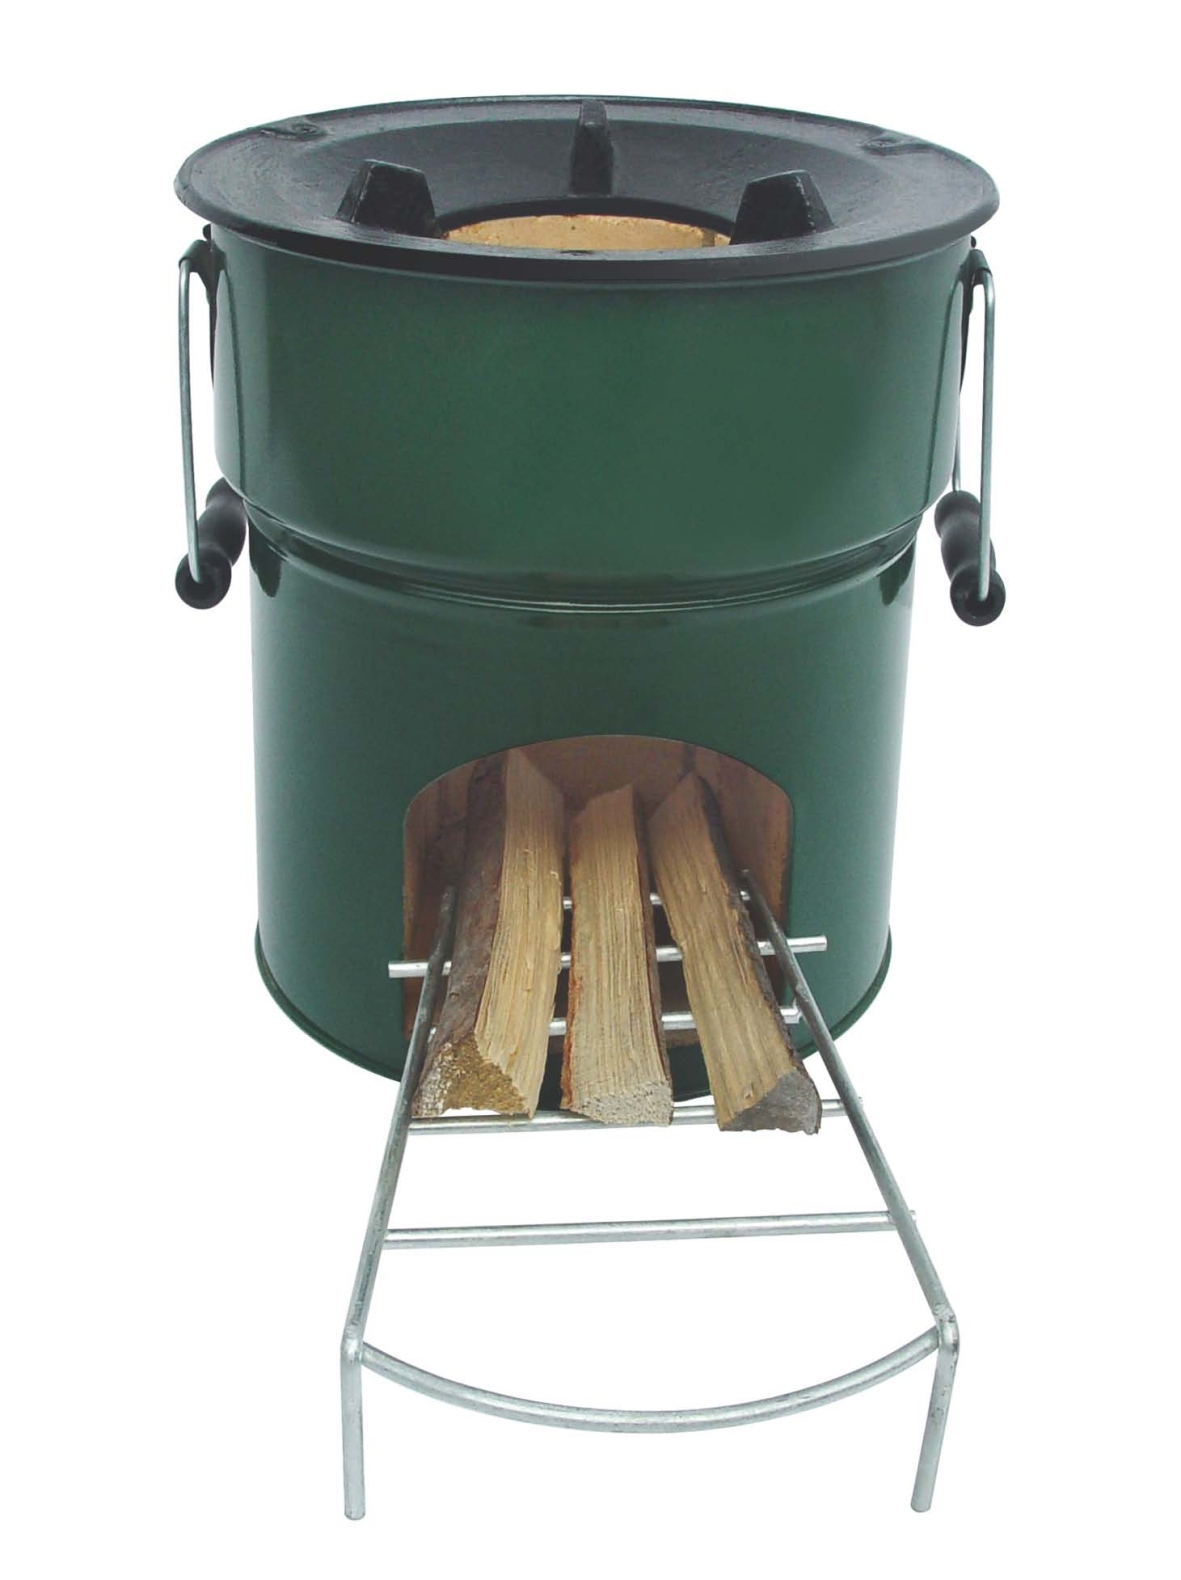 Greenfire rocket stove for camping west county for Small rocket heater